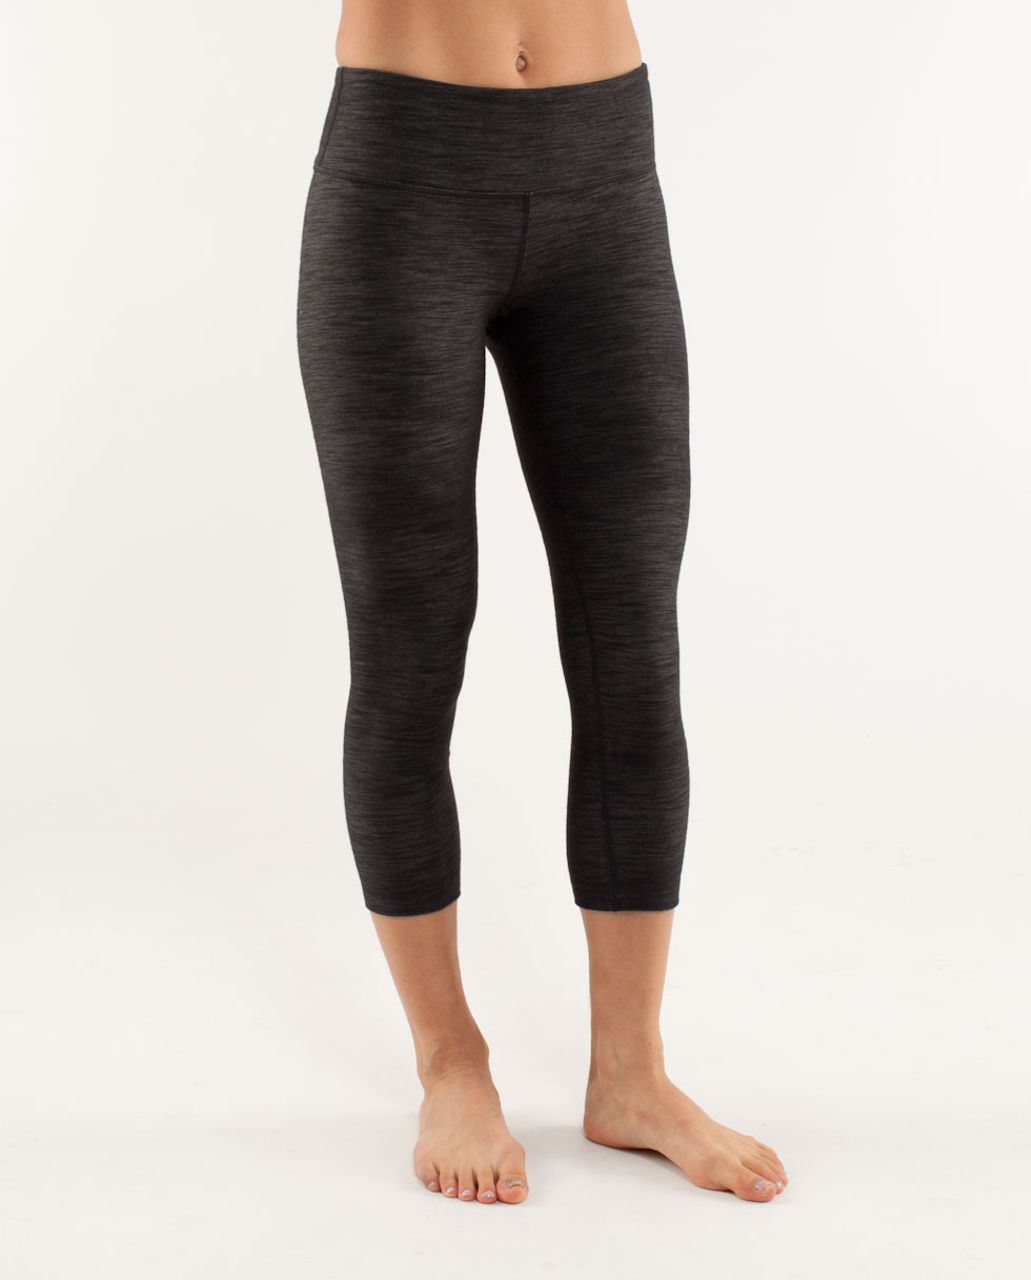 Lululemon Wunder Under Crop*Denim - Black Deep Coal Slub Denim